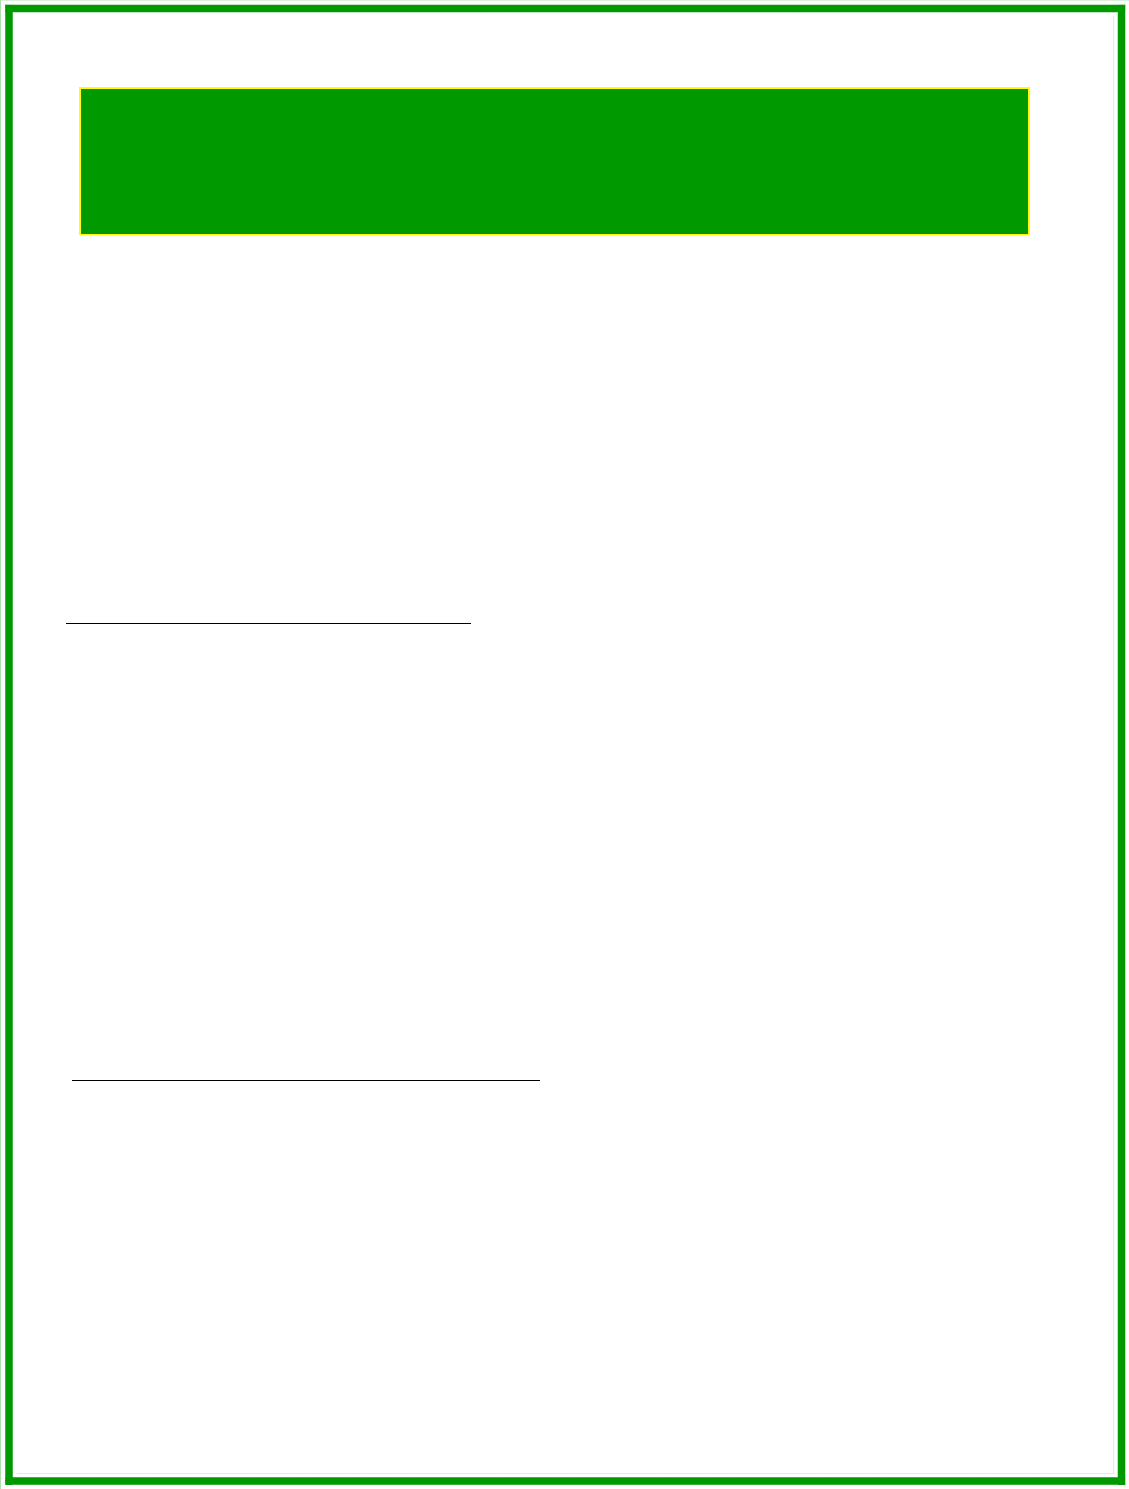 Work Schedule Template In Word And Formats